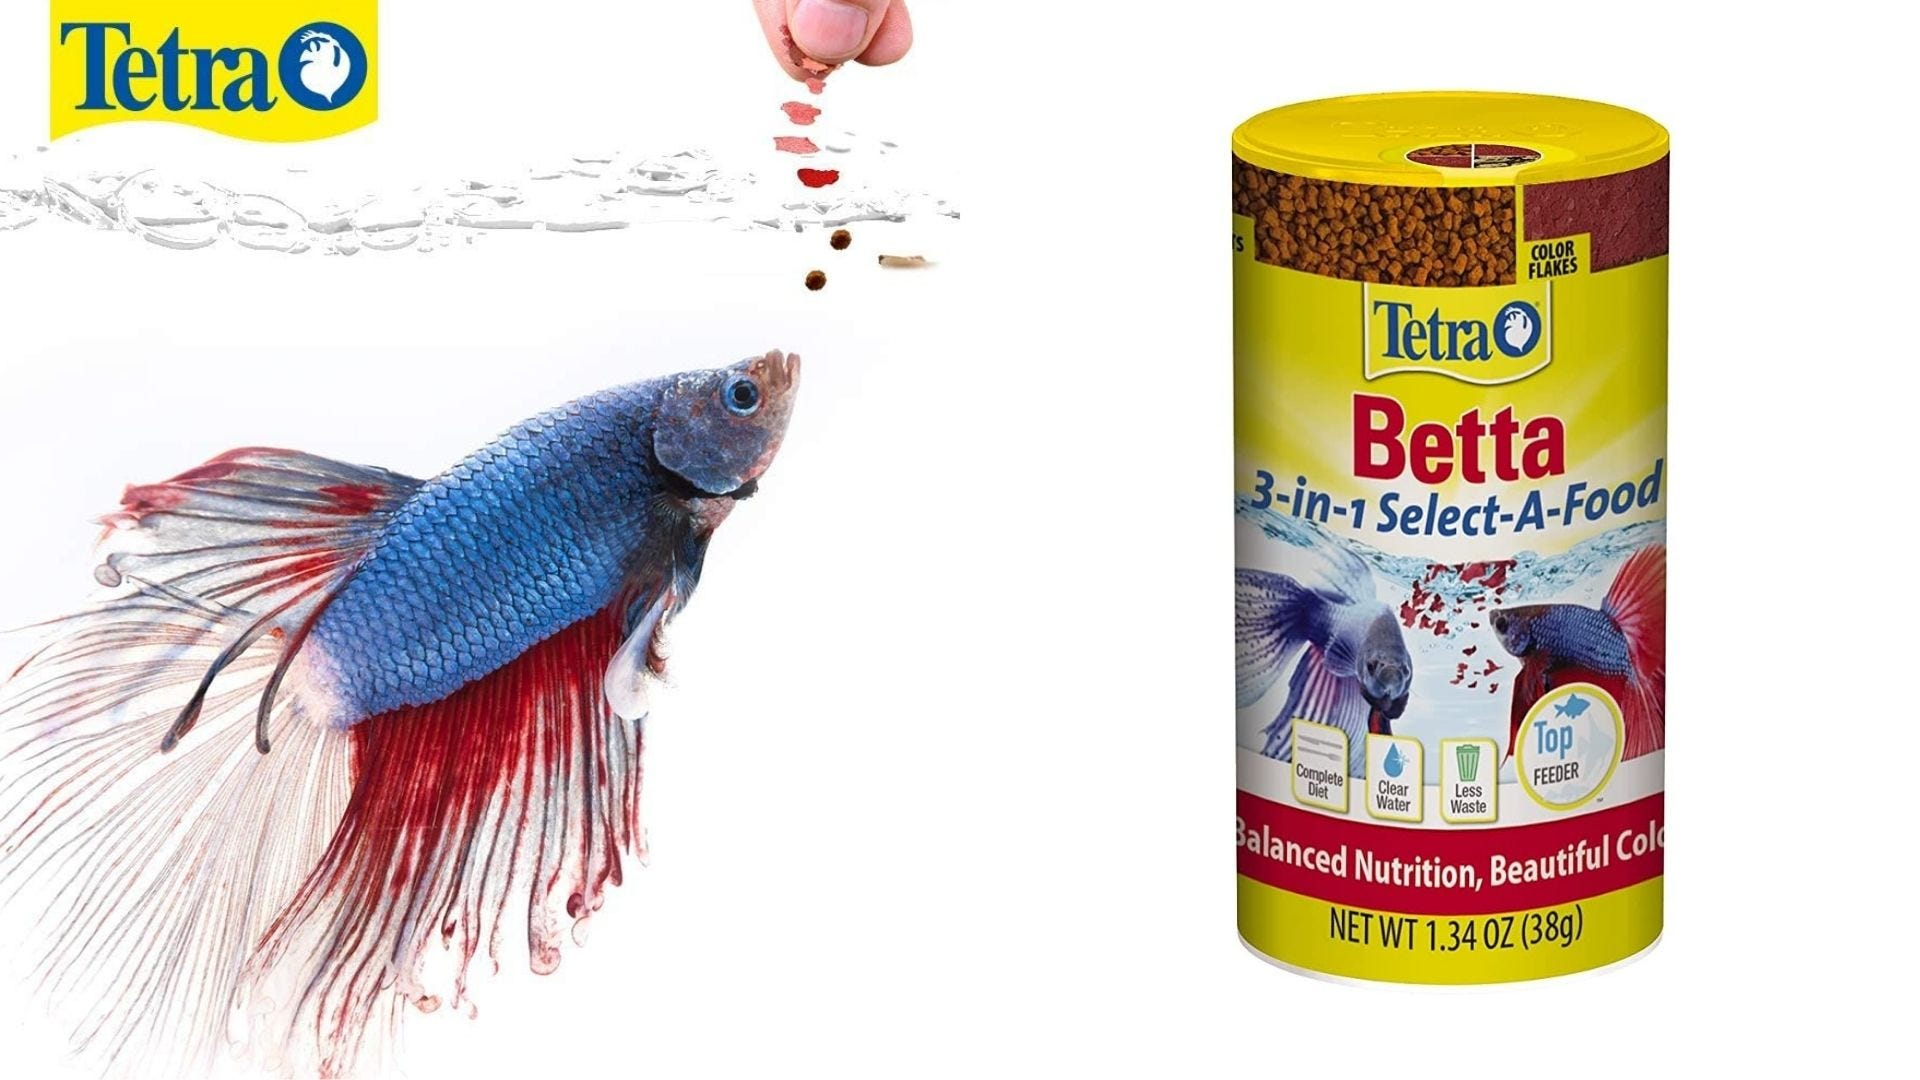 Someone feeds a Betta fish and a bottle of Betta fish food